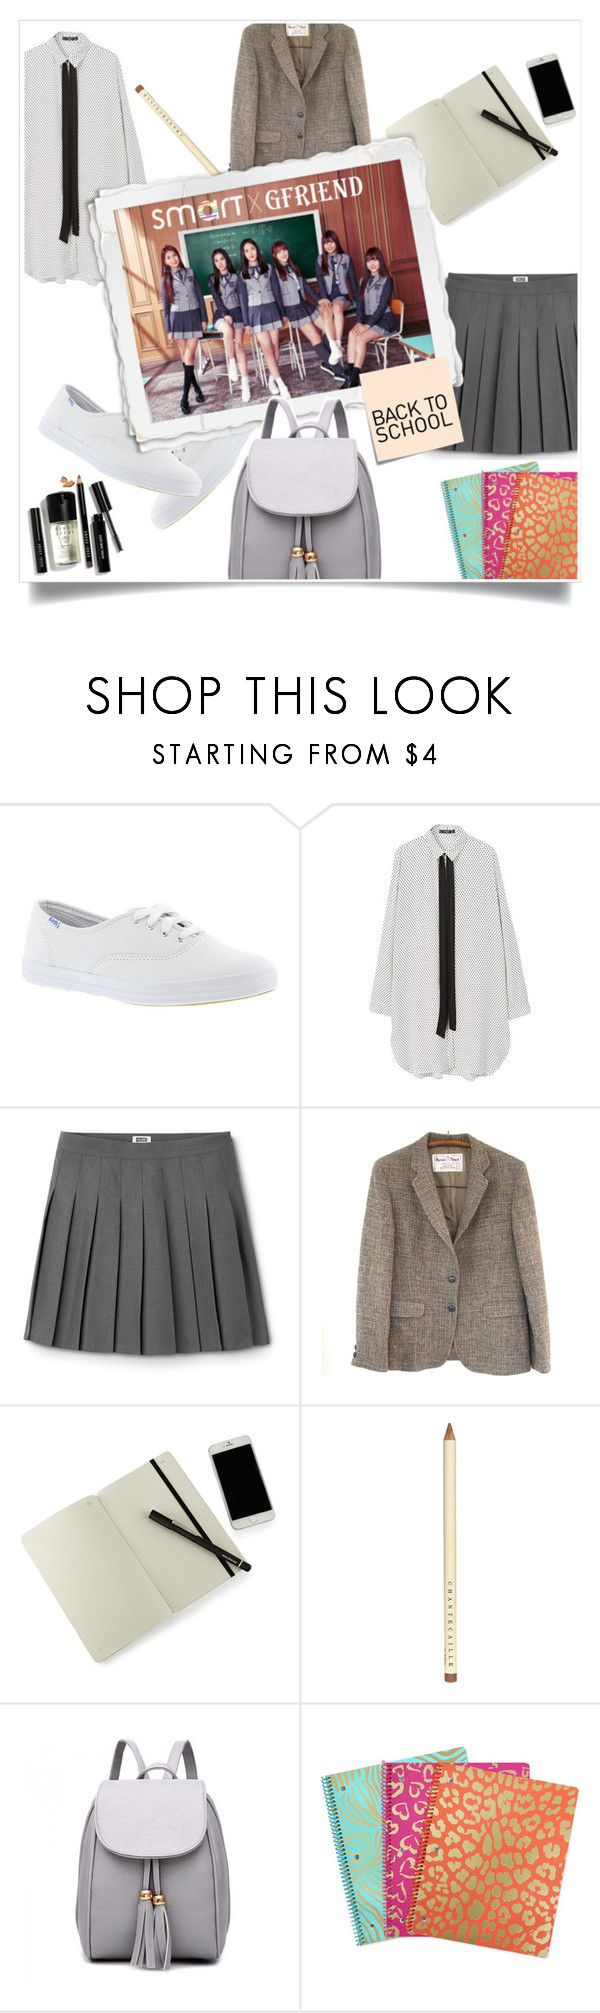 """""""Back to school"""" by elisabetta-negro ❤ liked on Polyvore featuring Keds, MANGO, Moleskine, Chantecaille, Post-It, Bobbi Brown Cosmetics and BackToSchool"""